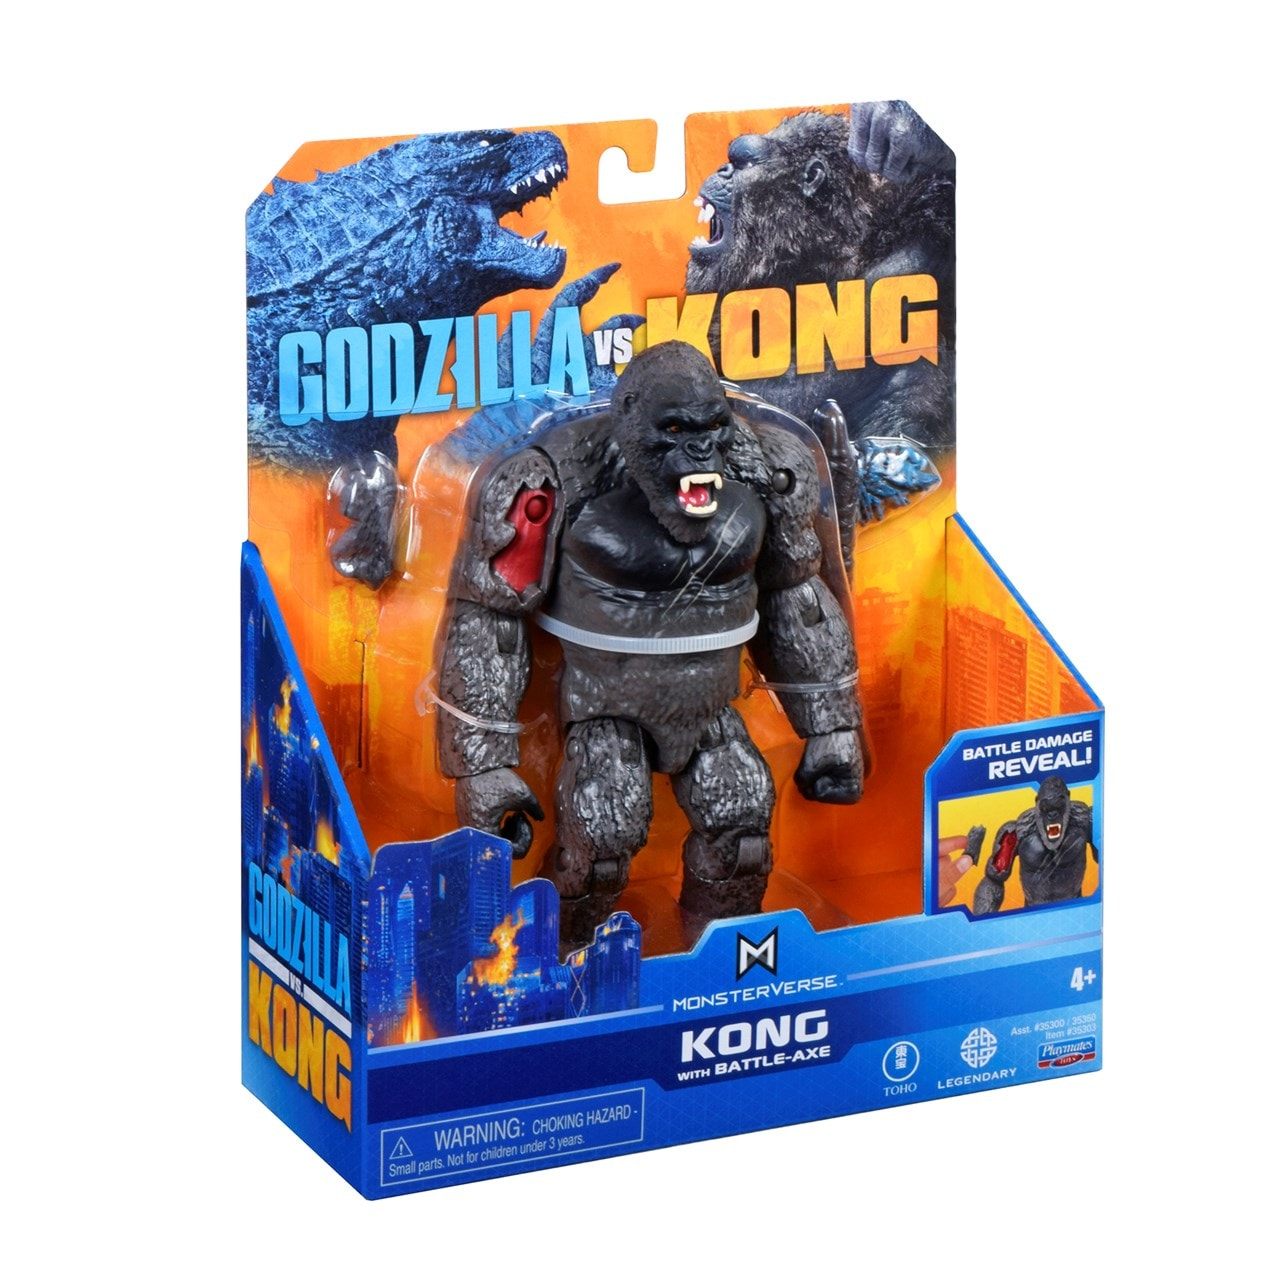 Monsterverse Godzilla vs Kong: King Kong with Axe Action Figure - 5